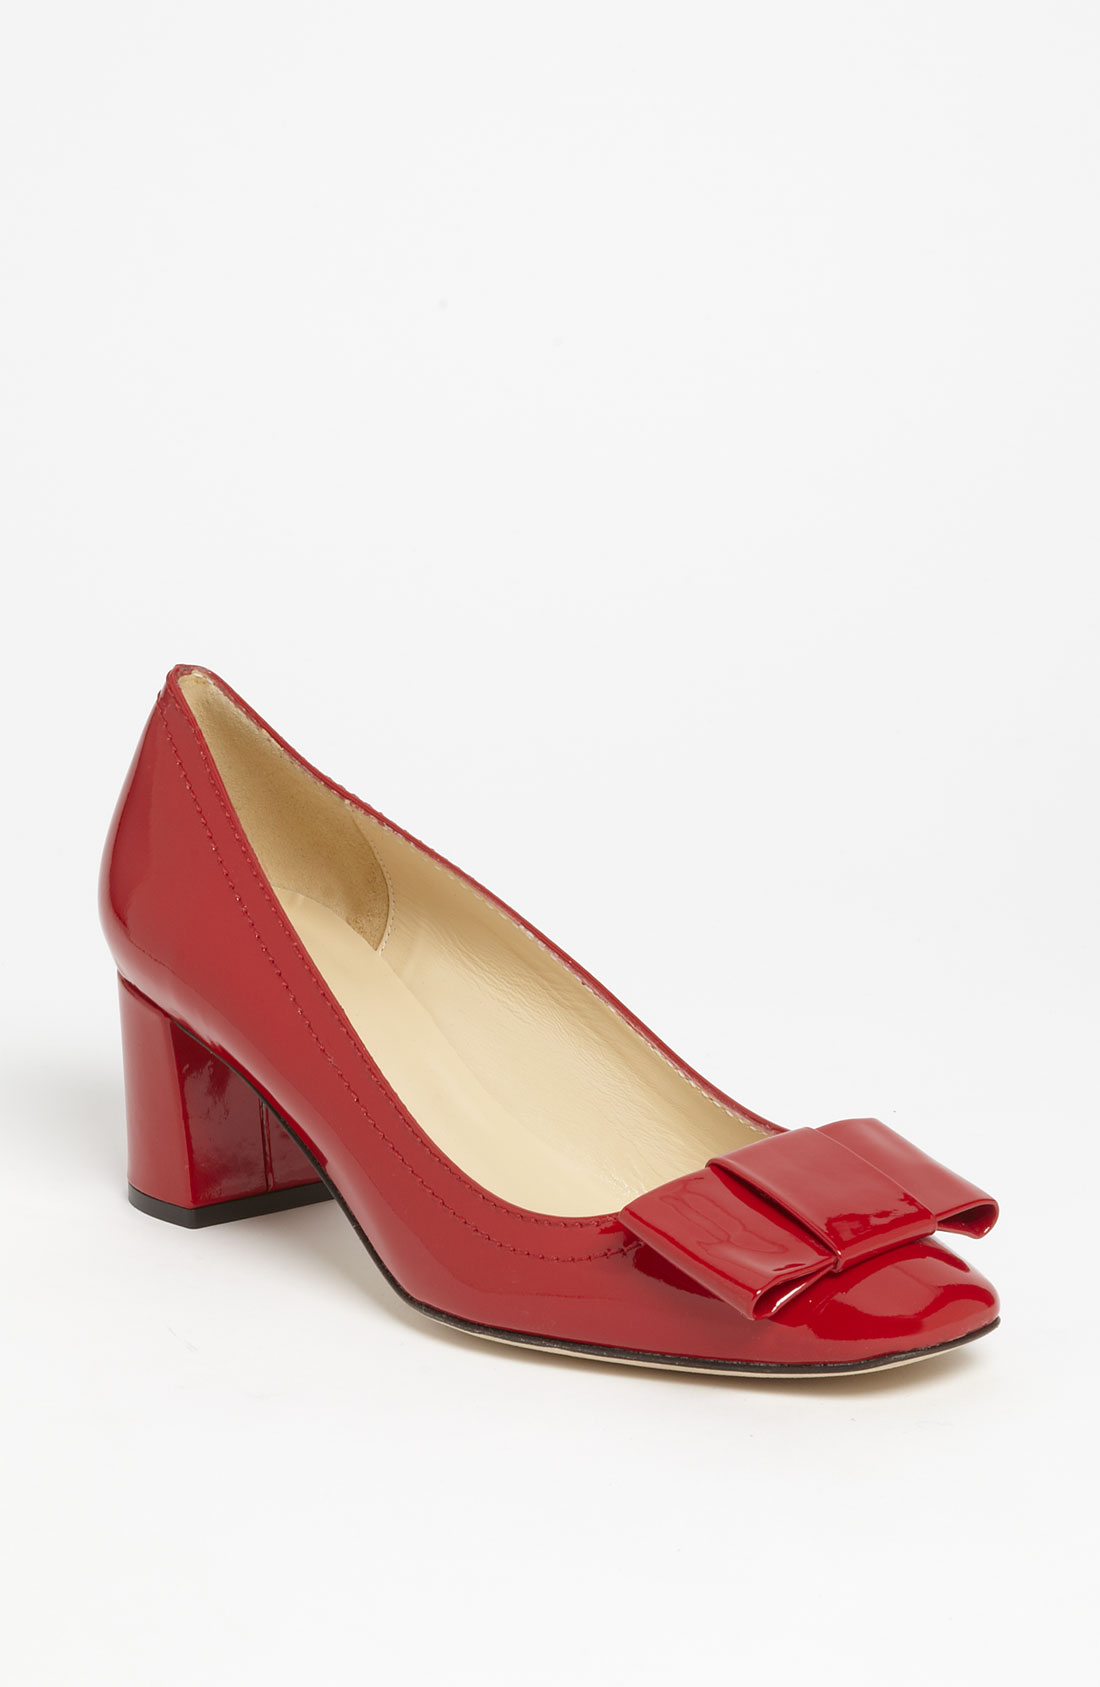 Kate Spade Red Patent Leather Shoes